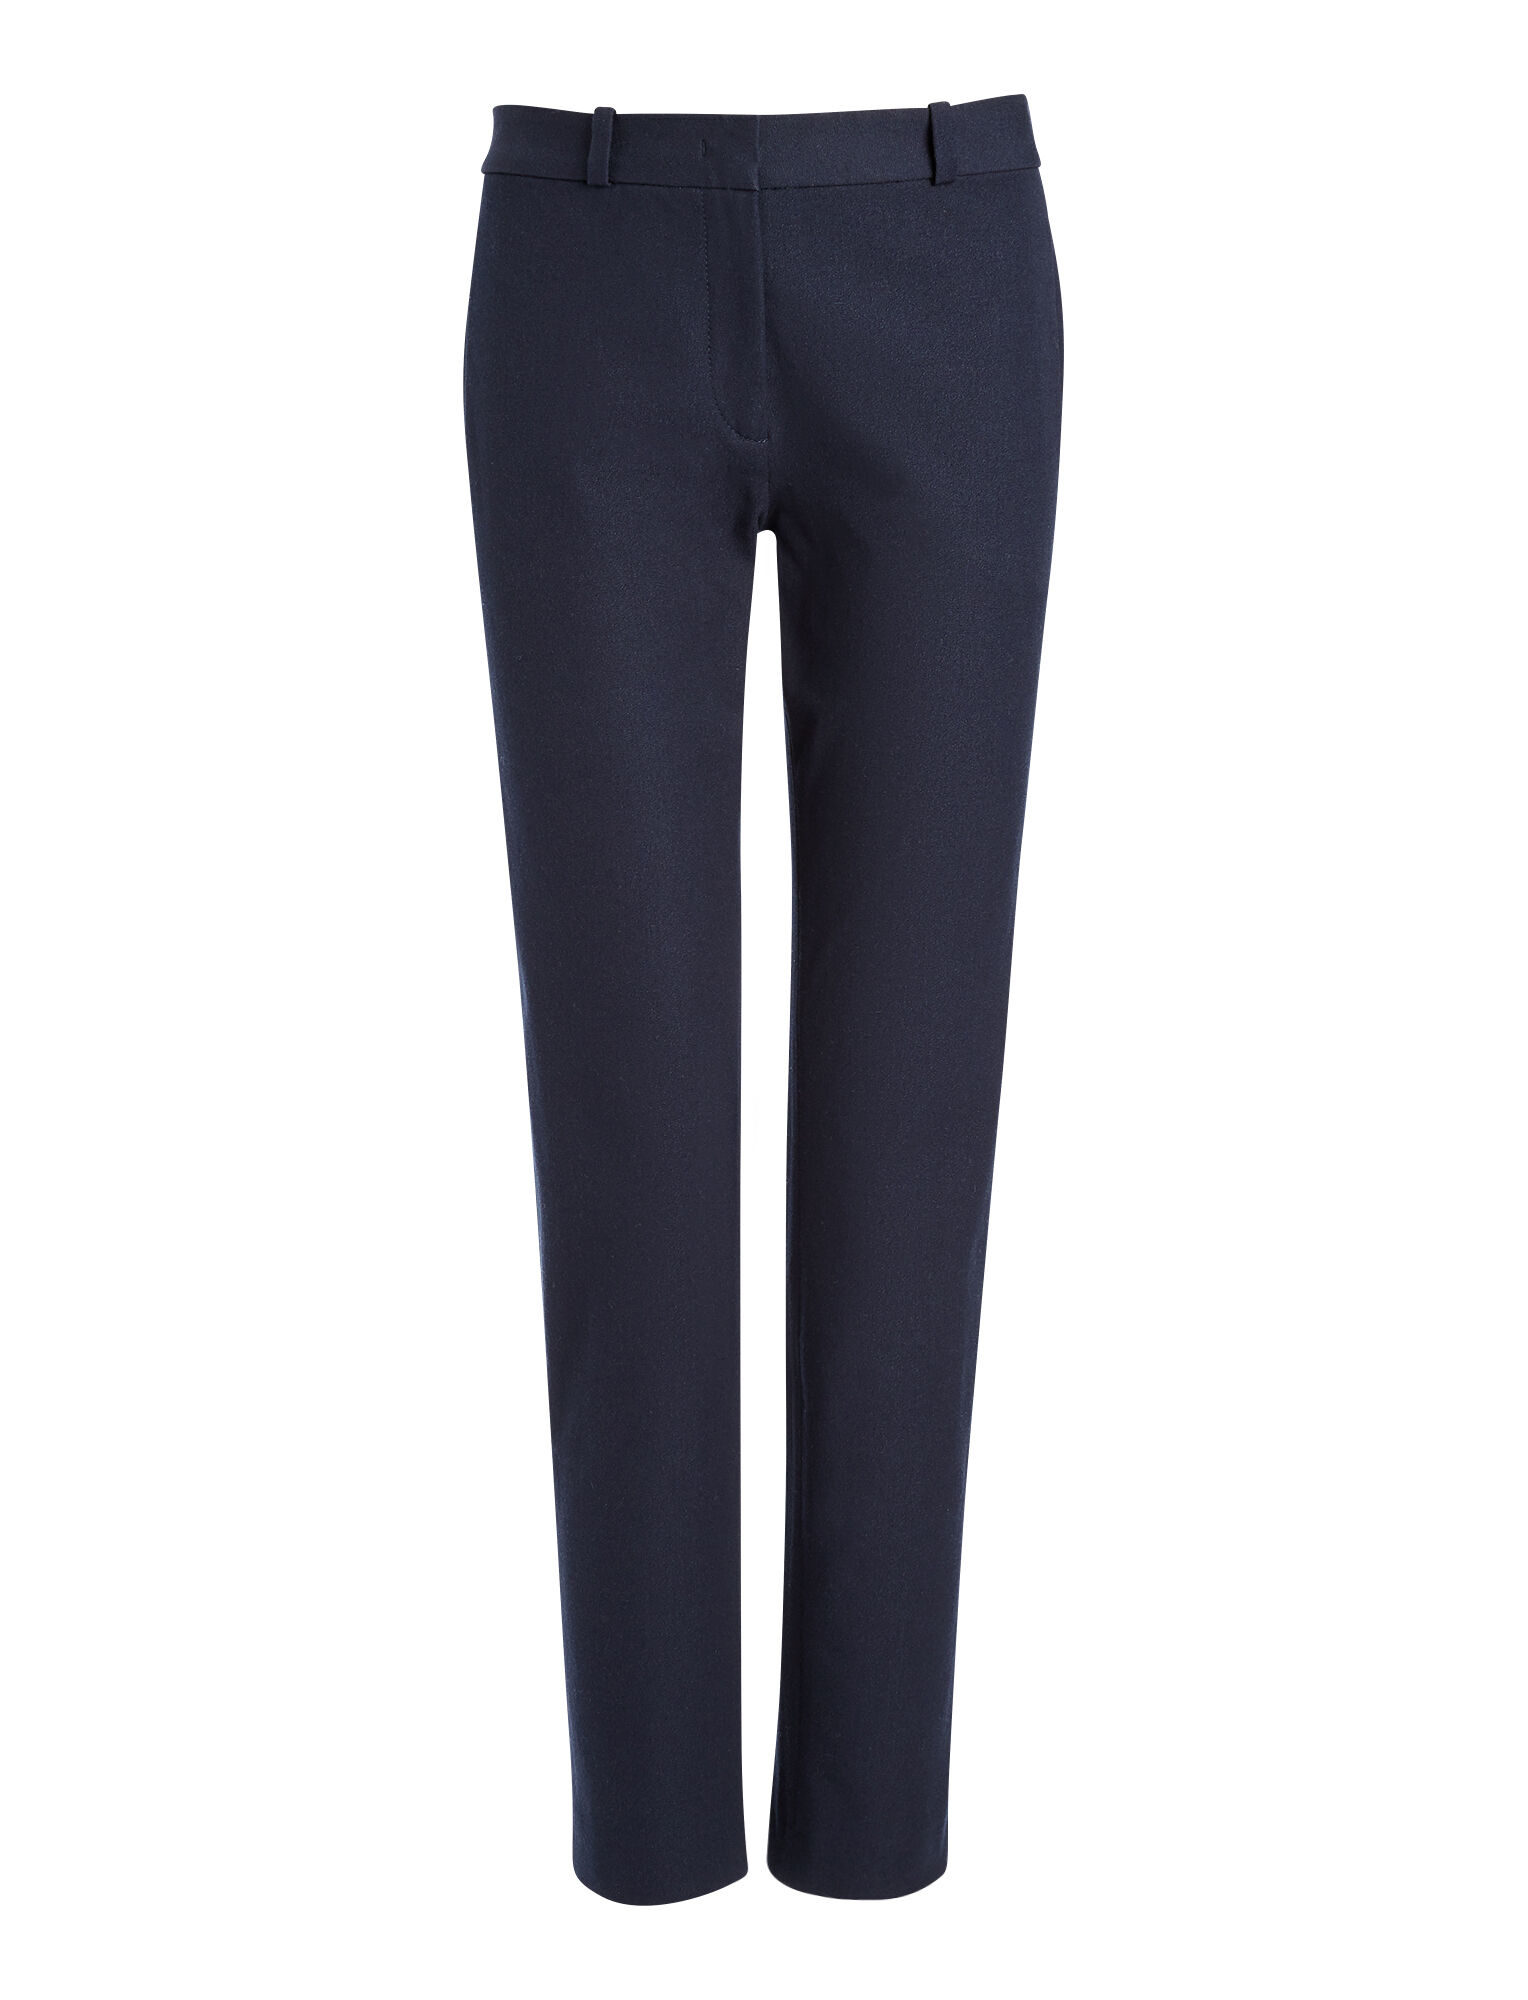 Joseph, Pantalon New Eliston en gabardine stretch, in NAVY